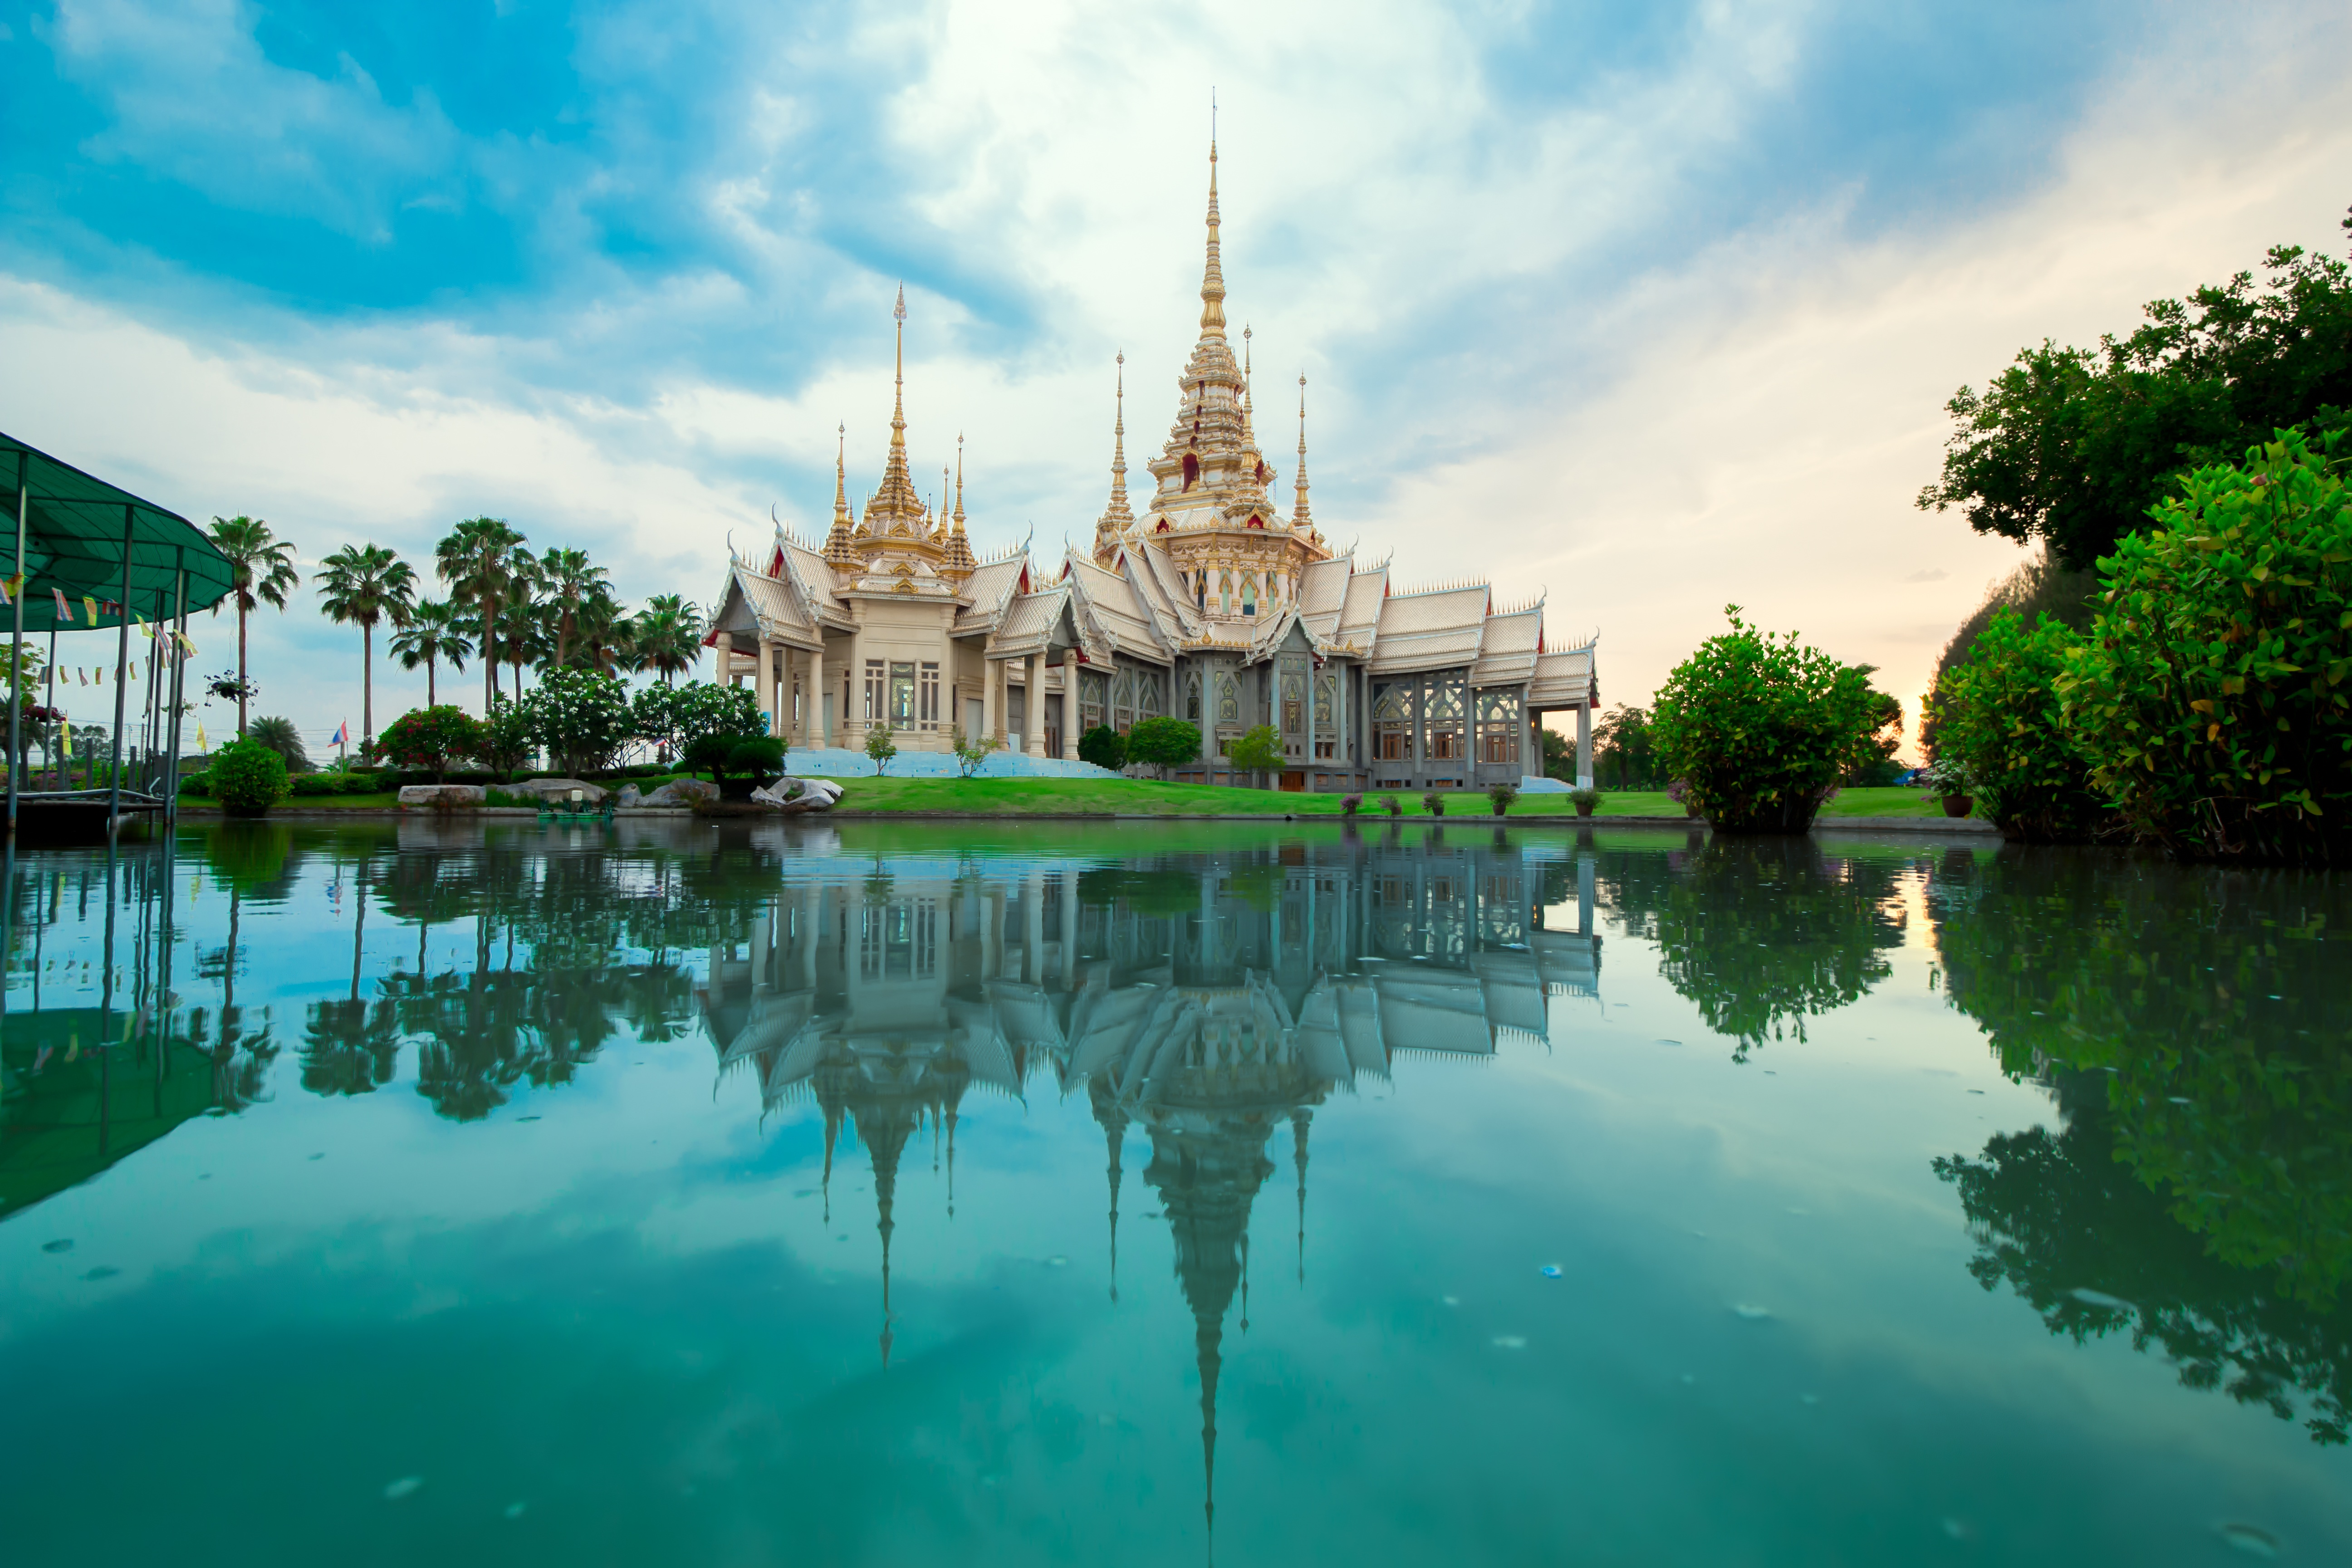 @projectfairytale A Country-by-Country Guide to Southeast Asia